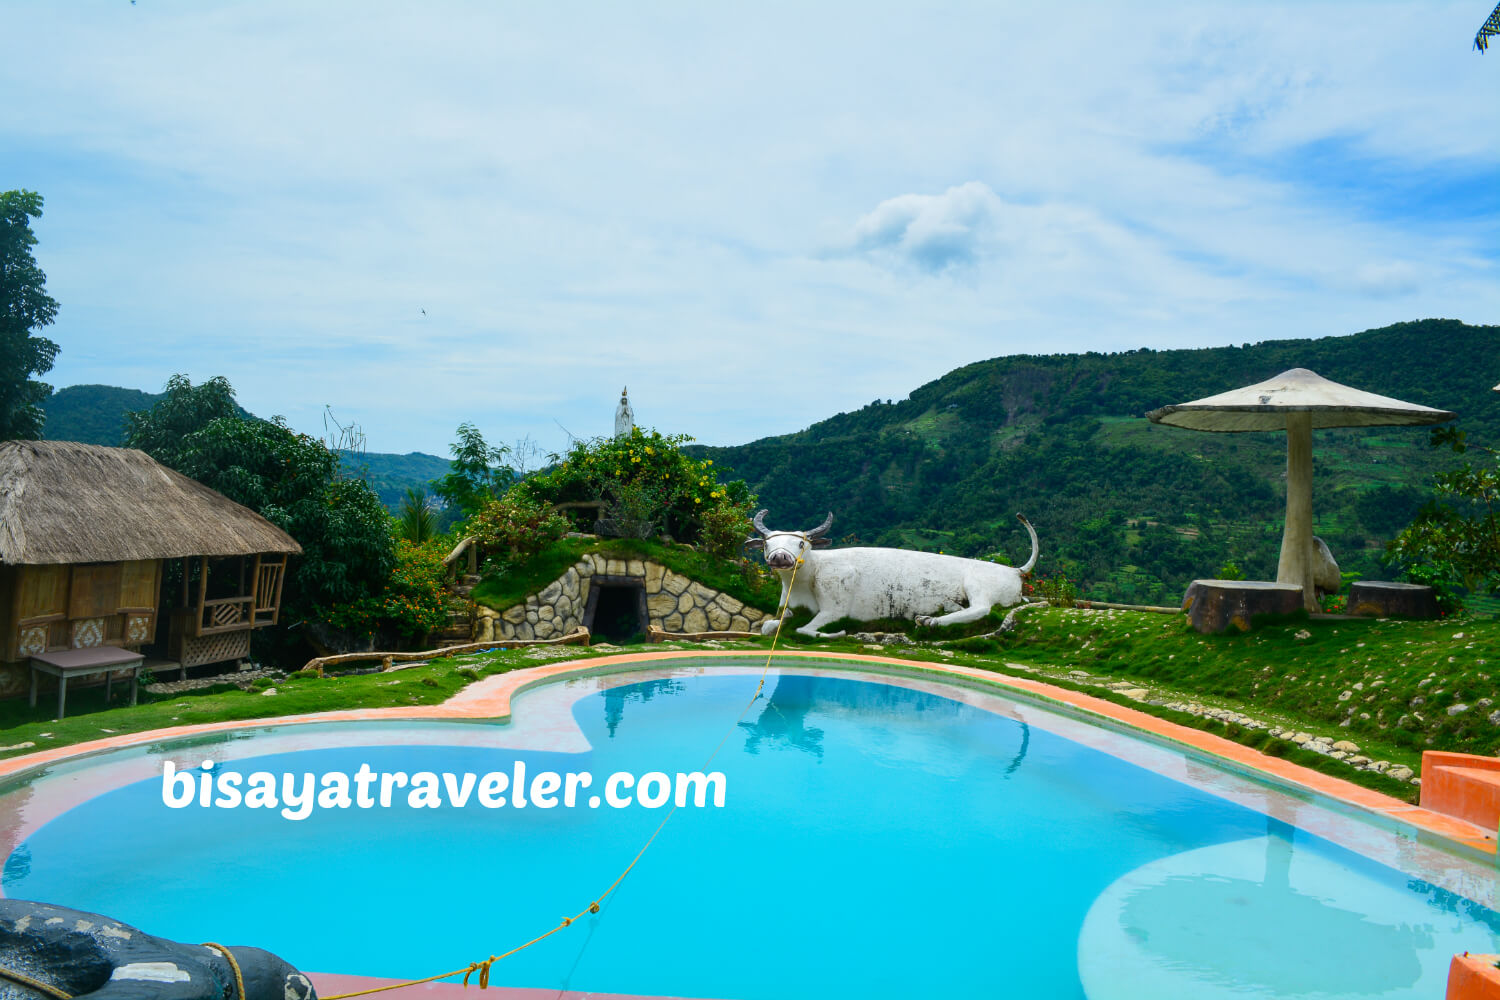 Coal Mountain Resort: A Scenic Retreat Tucked Away In Argao's Mountains